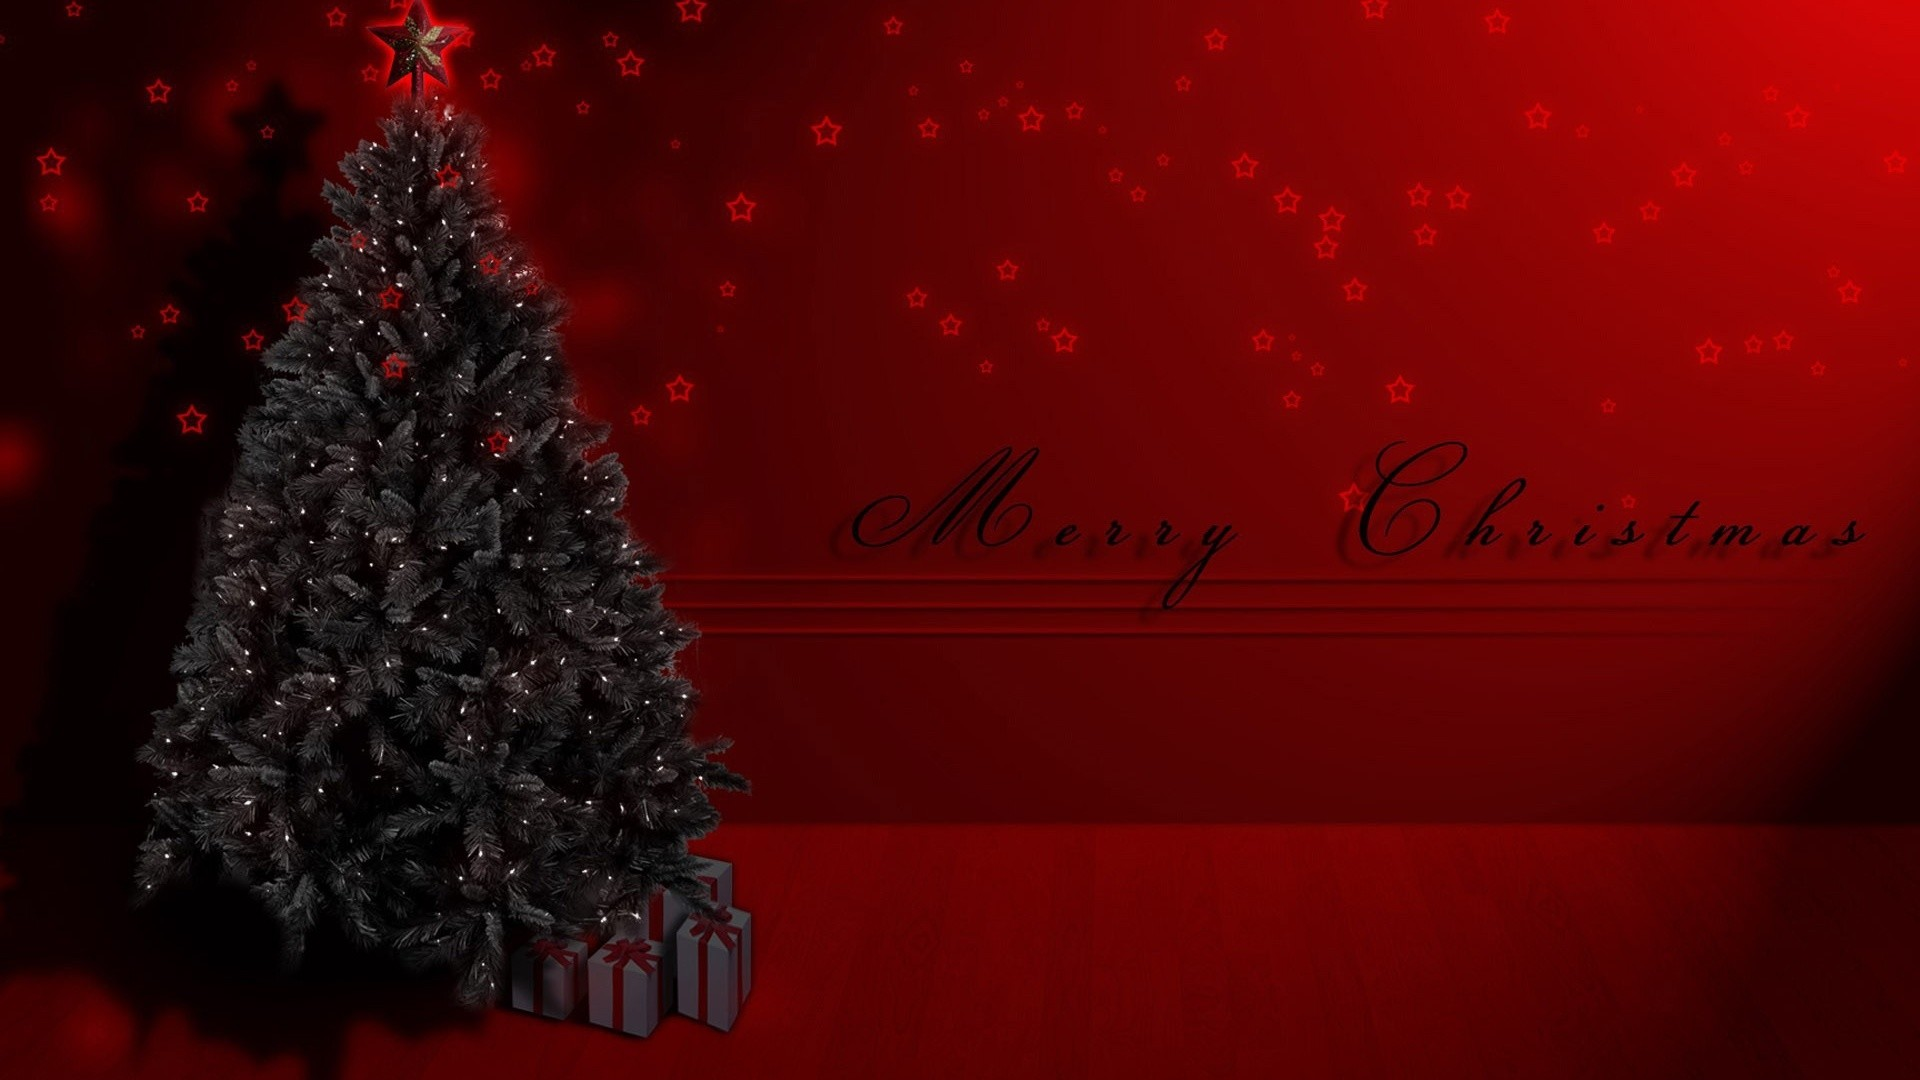 Merry Christmas. How to set wallpaper on your desktop? Click the  download link from above and set the wallpaper on the desktop from your OS.